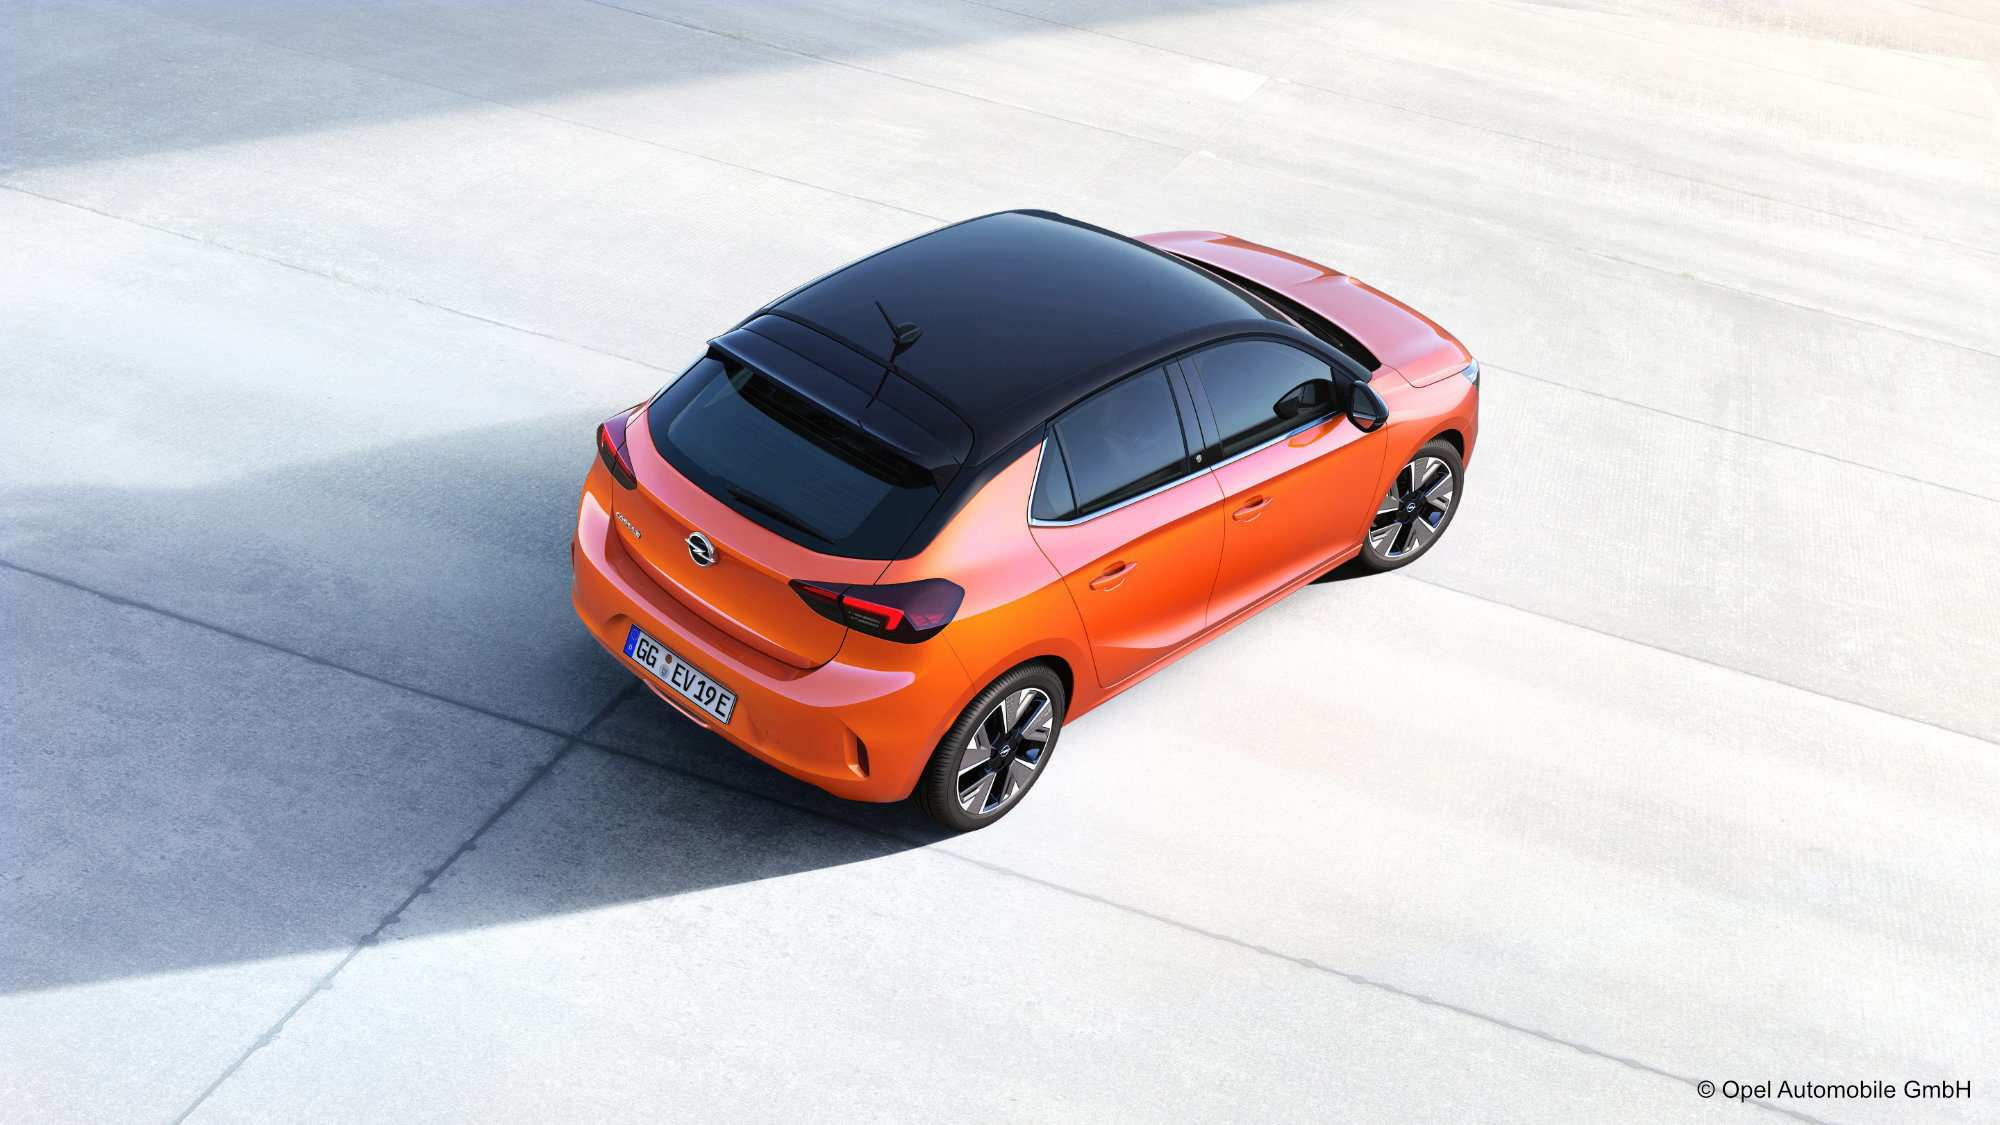 42 The Best 2019 Opel Corsa Images